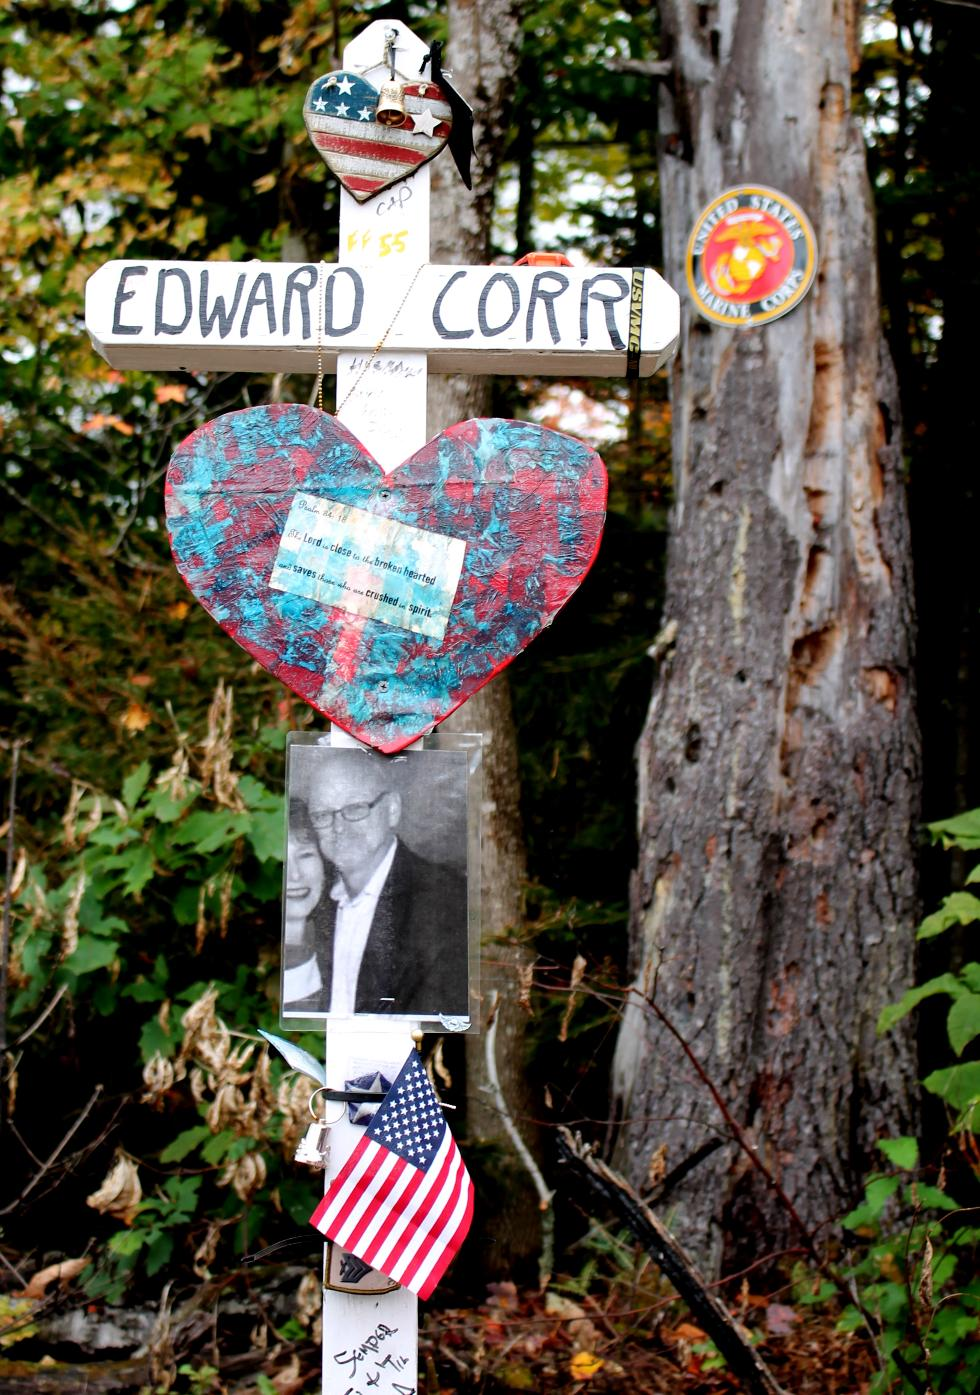 Edward Corr - Lakeville Mass Lost in Randolph NH Motorcycle Tragedy